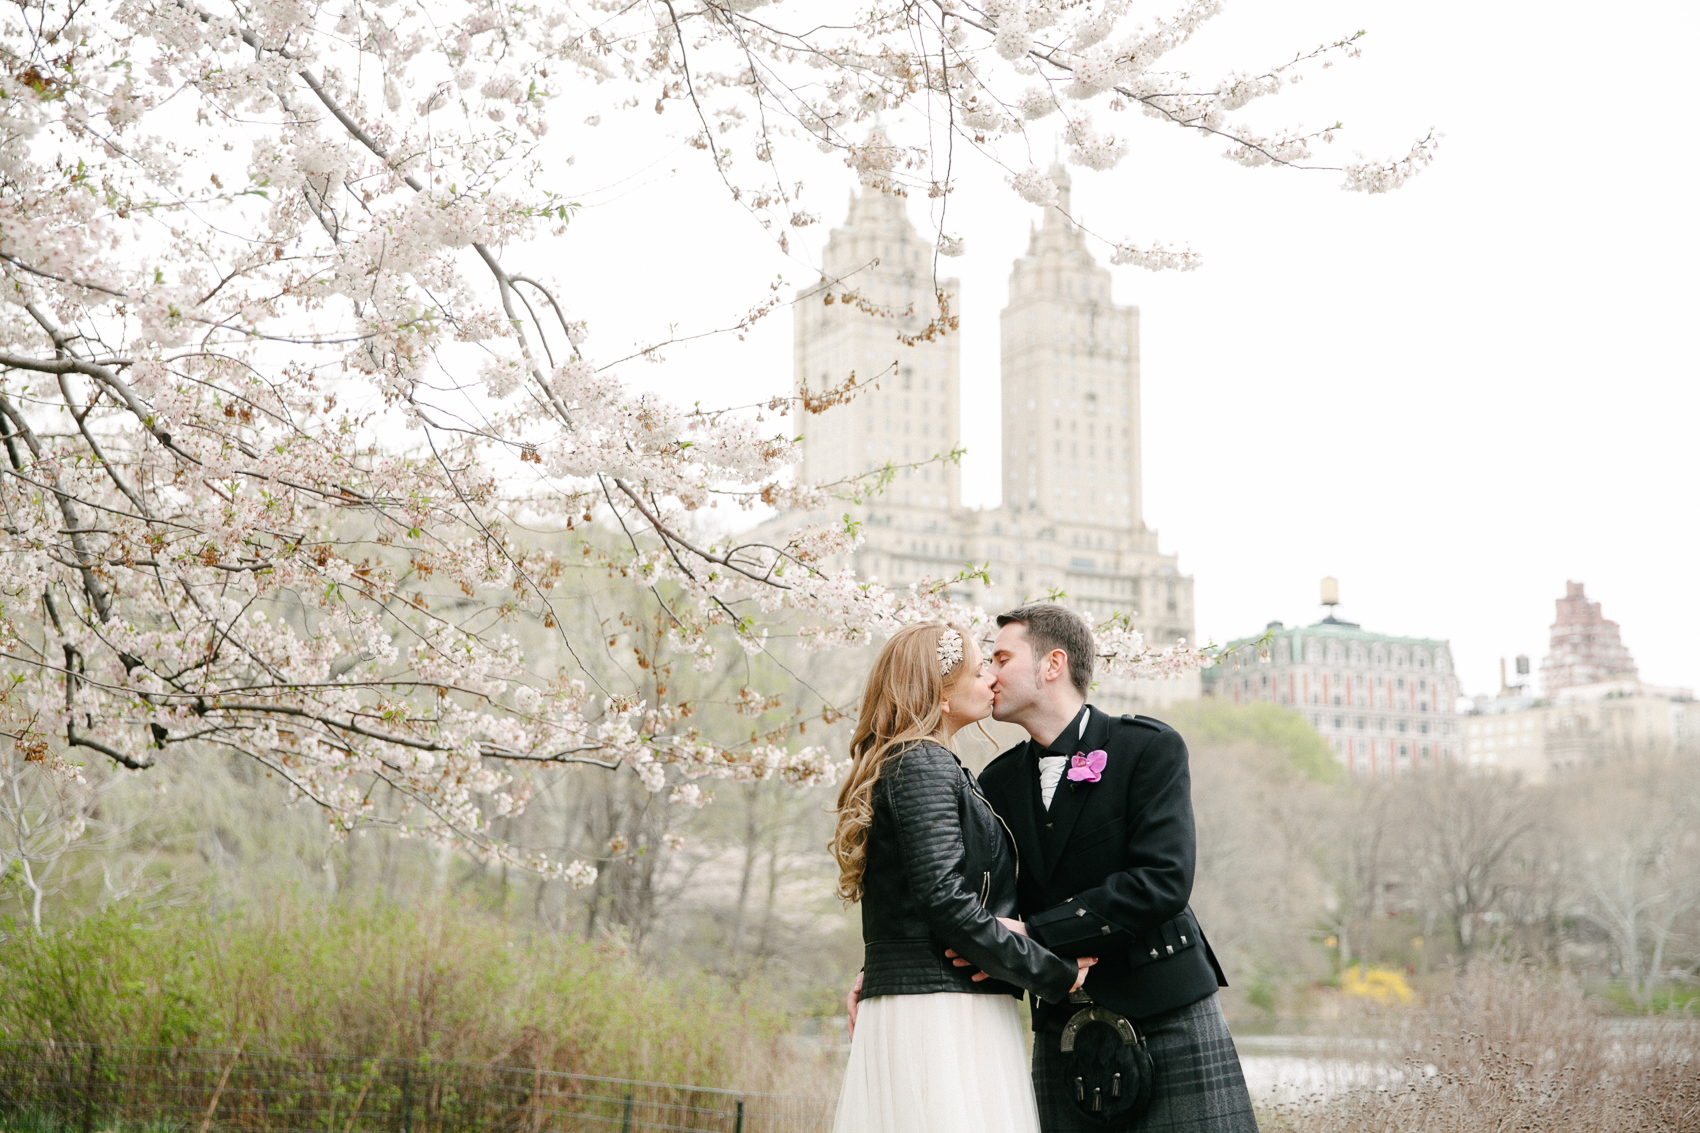 NYC-wedding-photos-by-Tanya-Isaeva-72.jpg